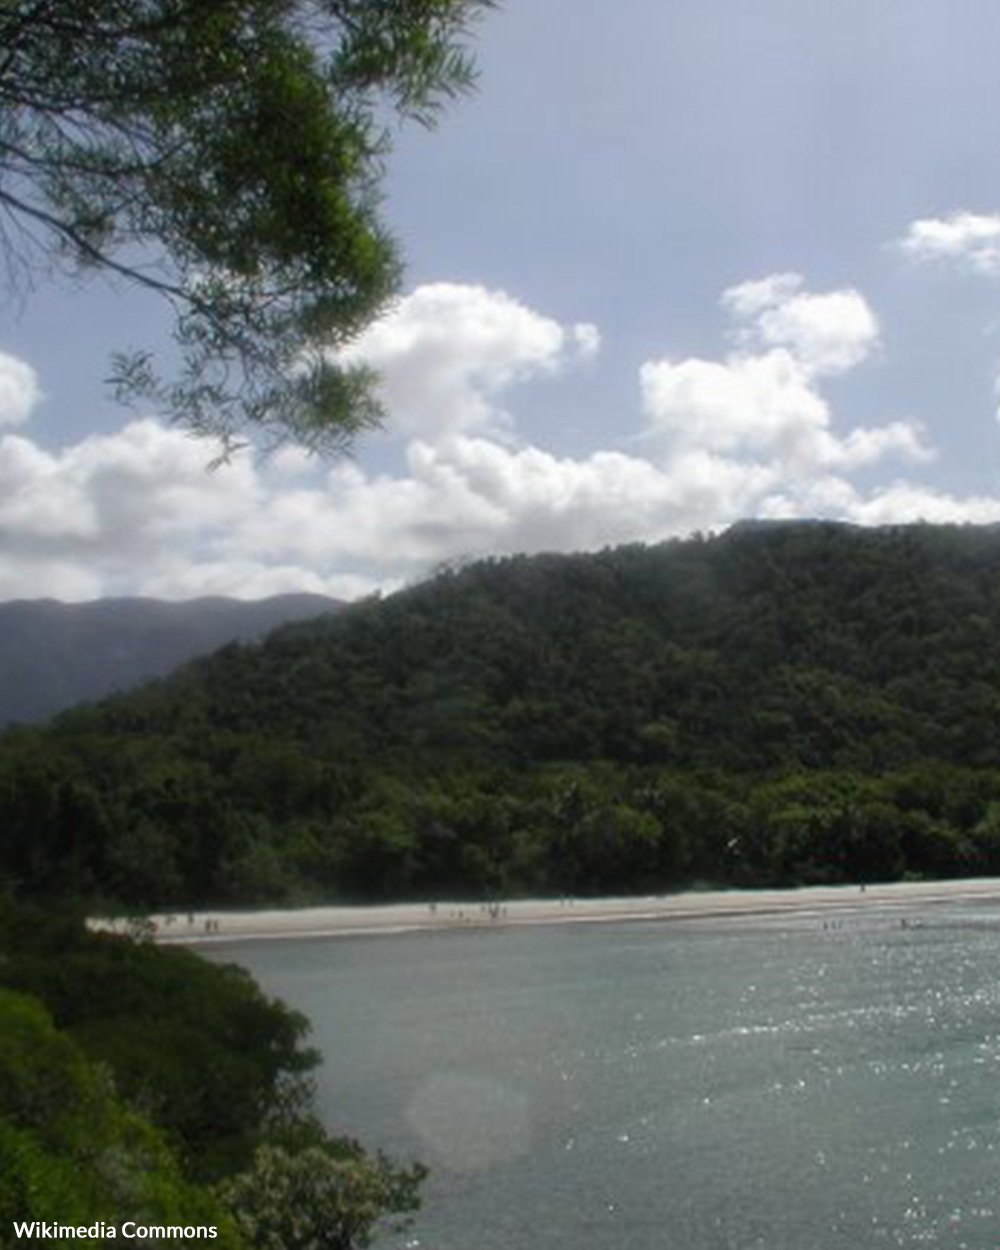 The Eastern Kuku Yalanji have plans to set up opportunities for tribal youth in these national parks.